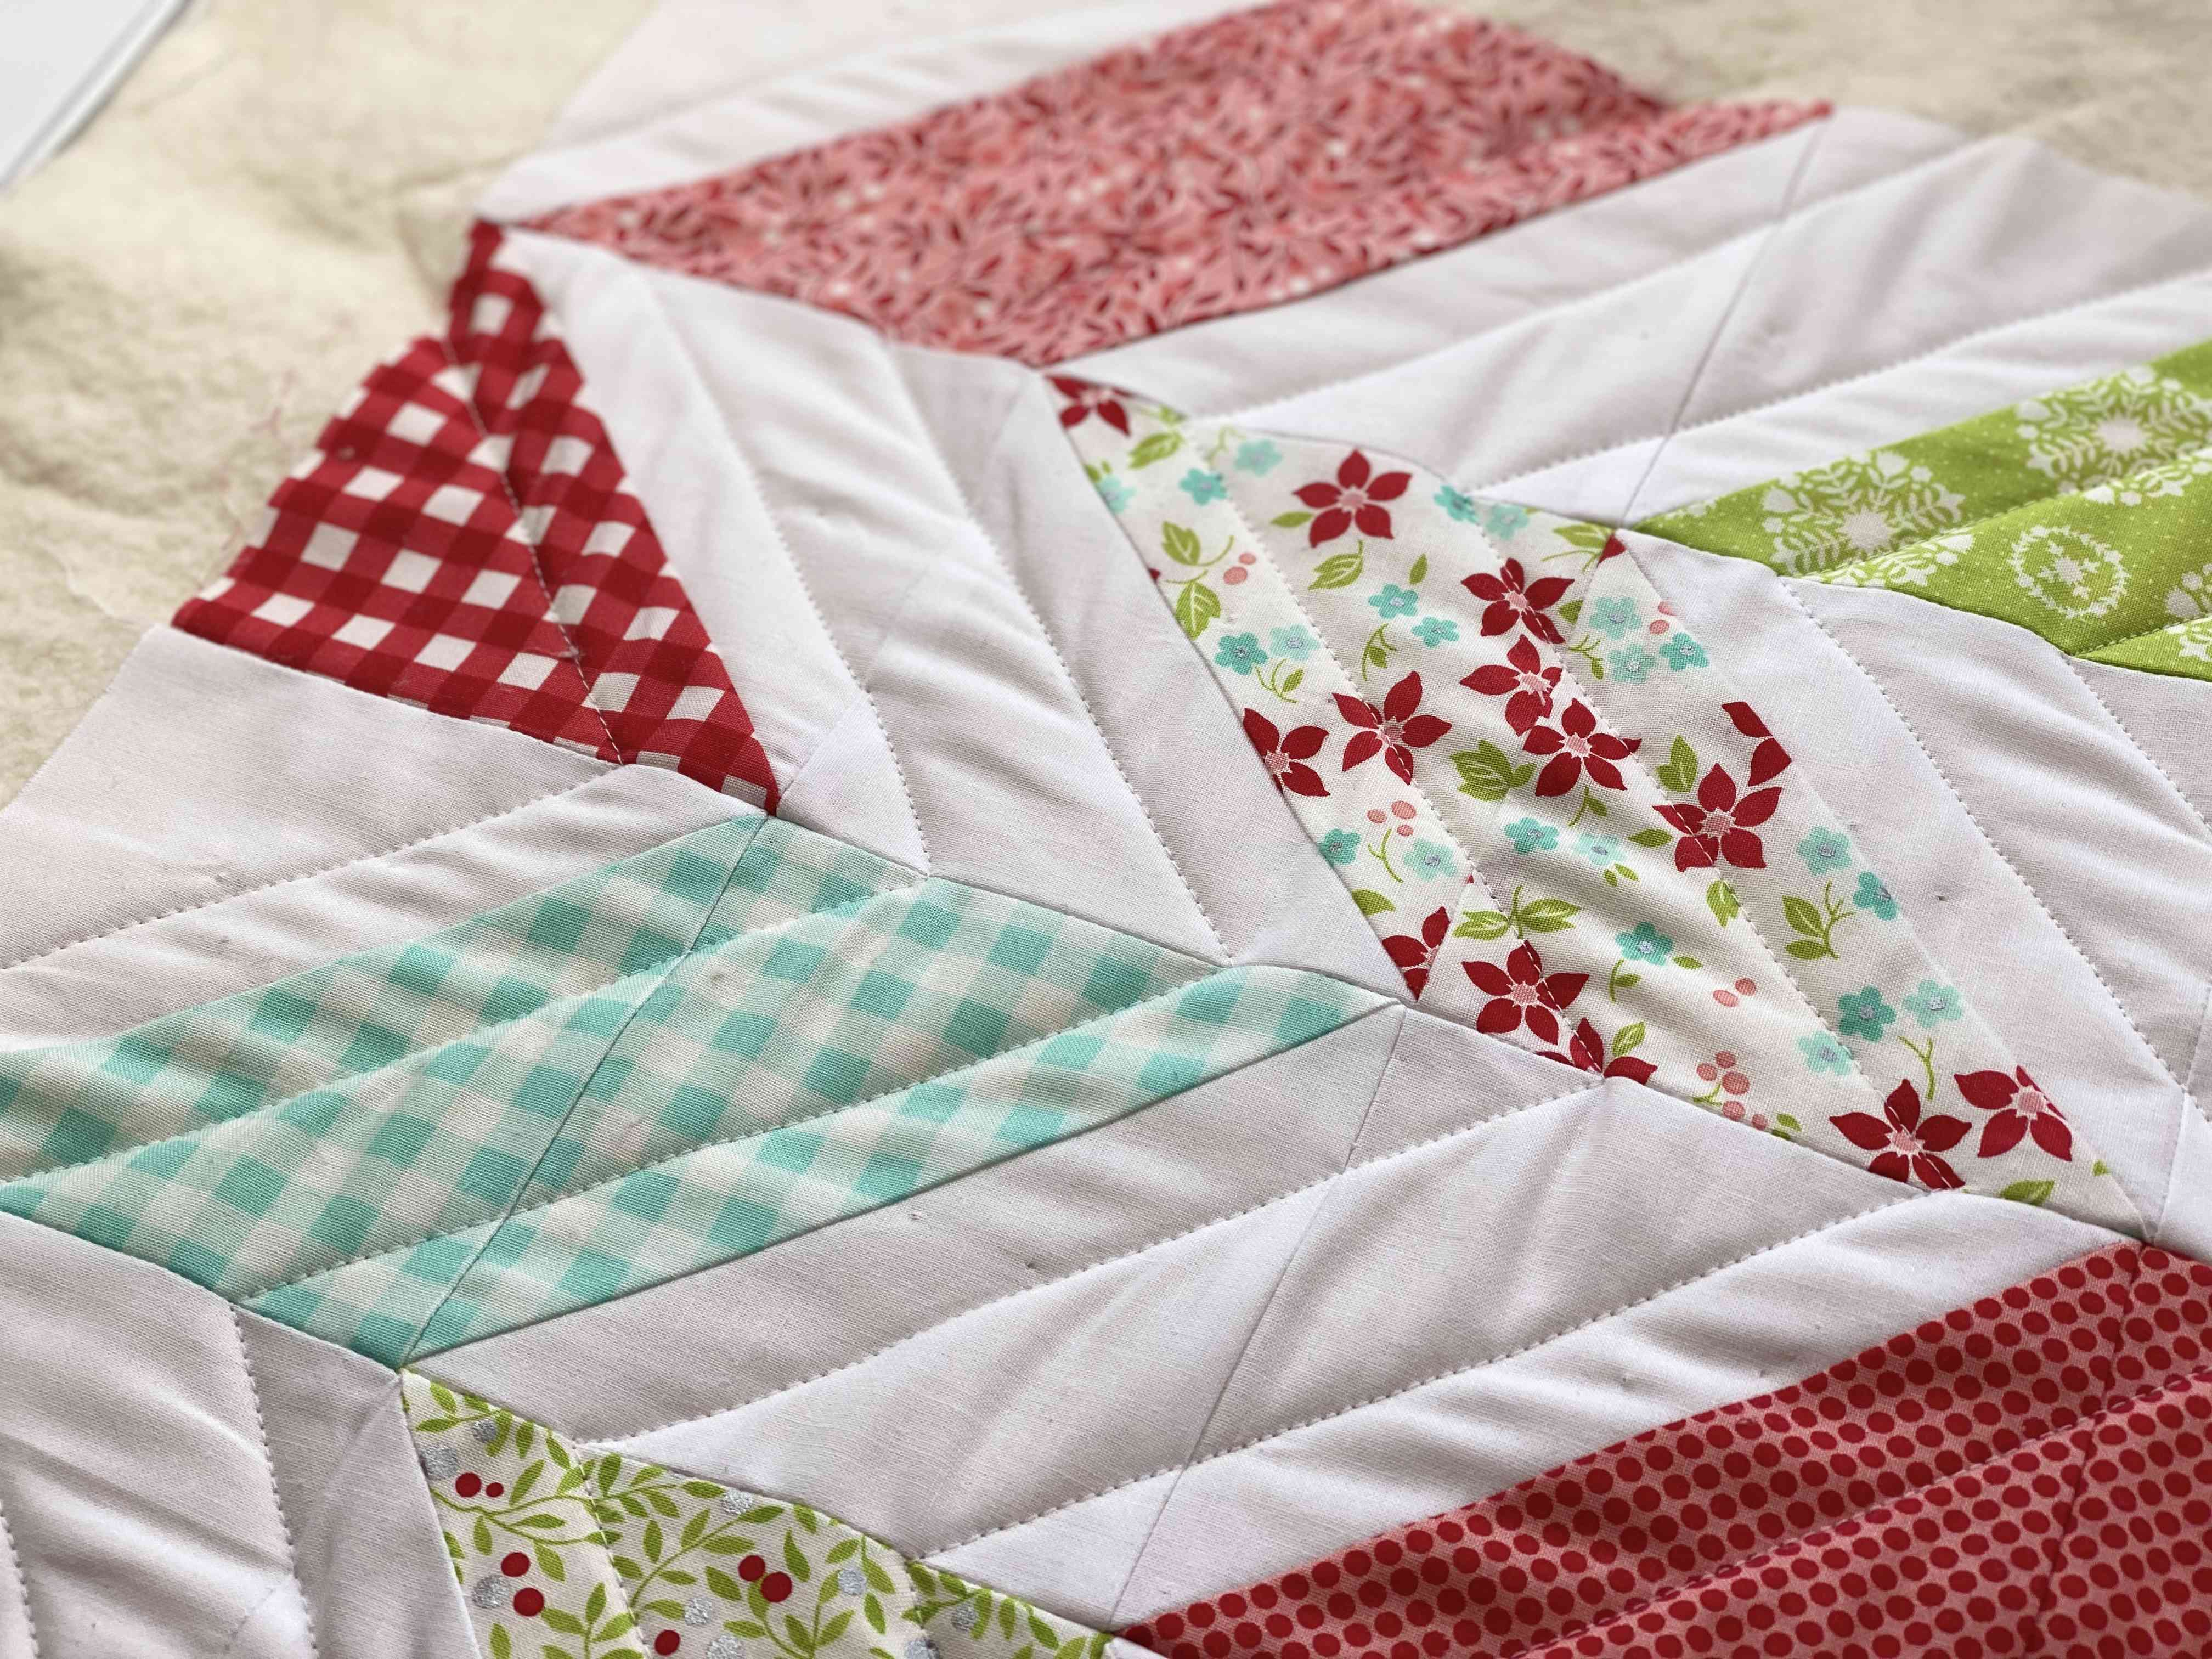 Outlining the herringbone pattern with quilting